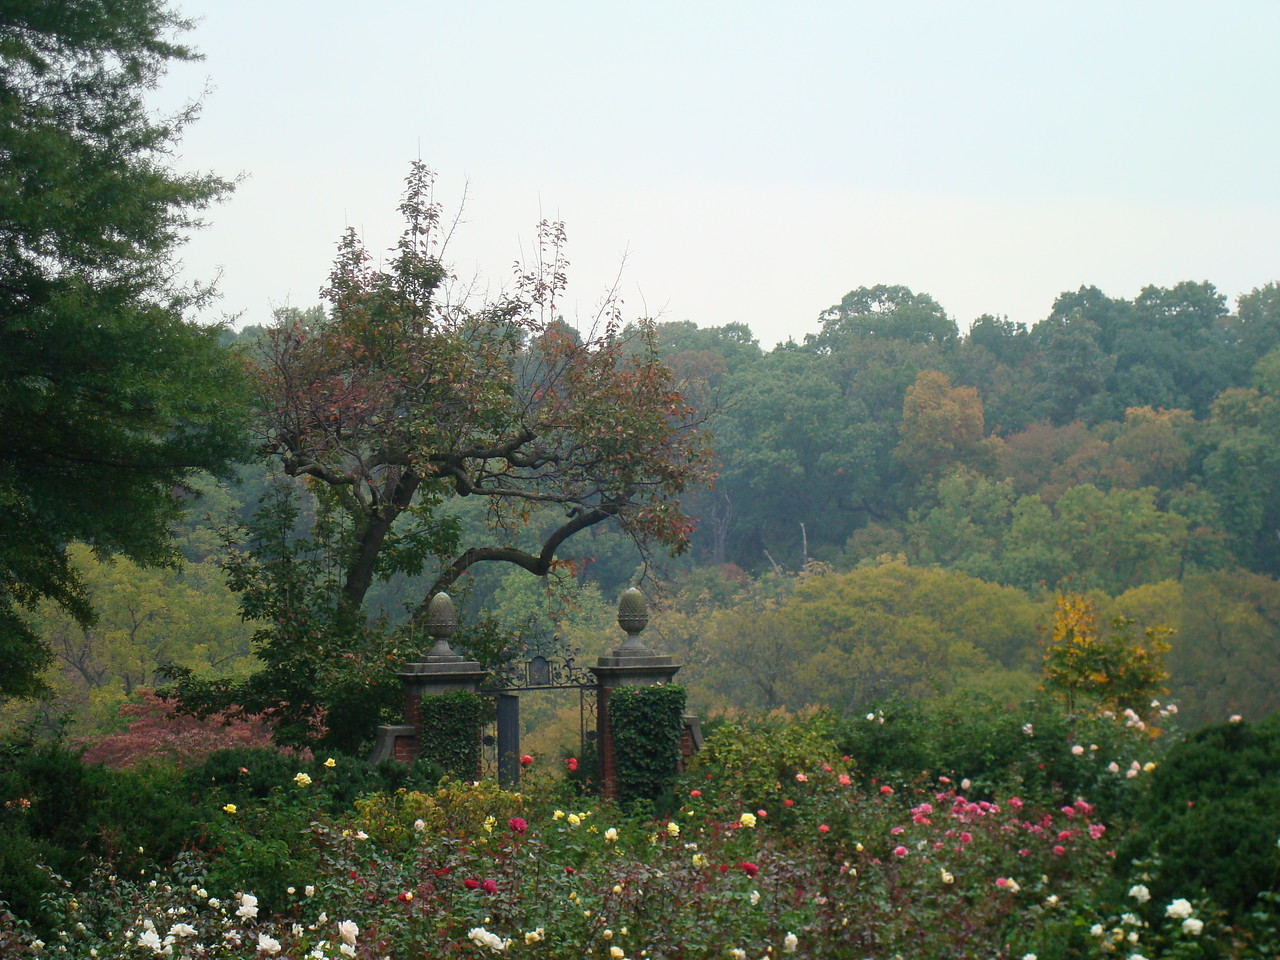 Looking out over the Rose Garden of the Dumbarton Oaks Gardens toward the trees of Dumbarton Oaks Park beyond